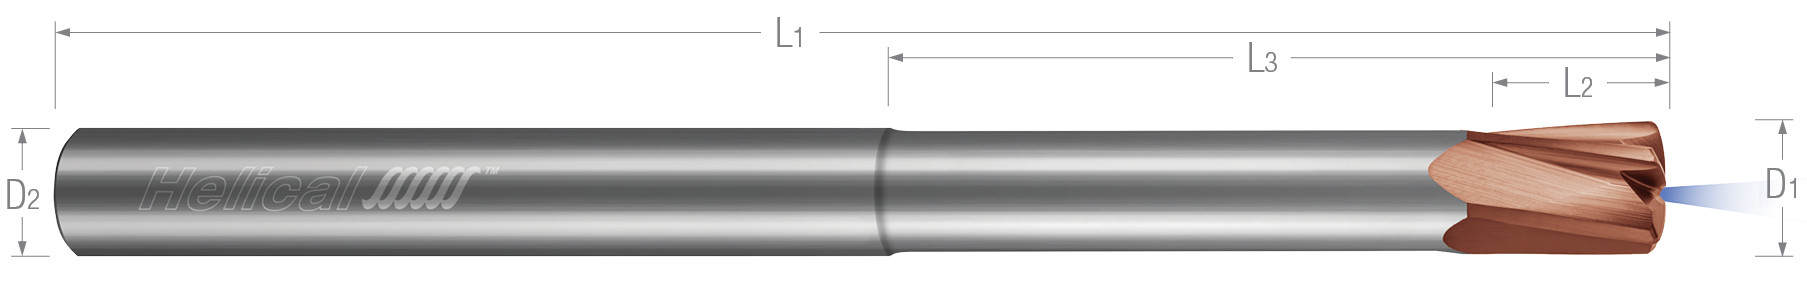 High Feed End Mills - Steels up to 45 Rc - Variable Pitch - Coolant Through - Reduced Neck